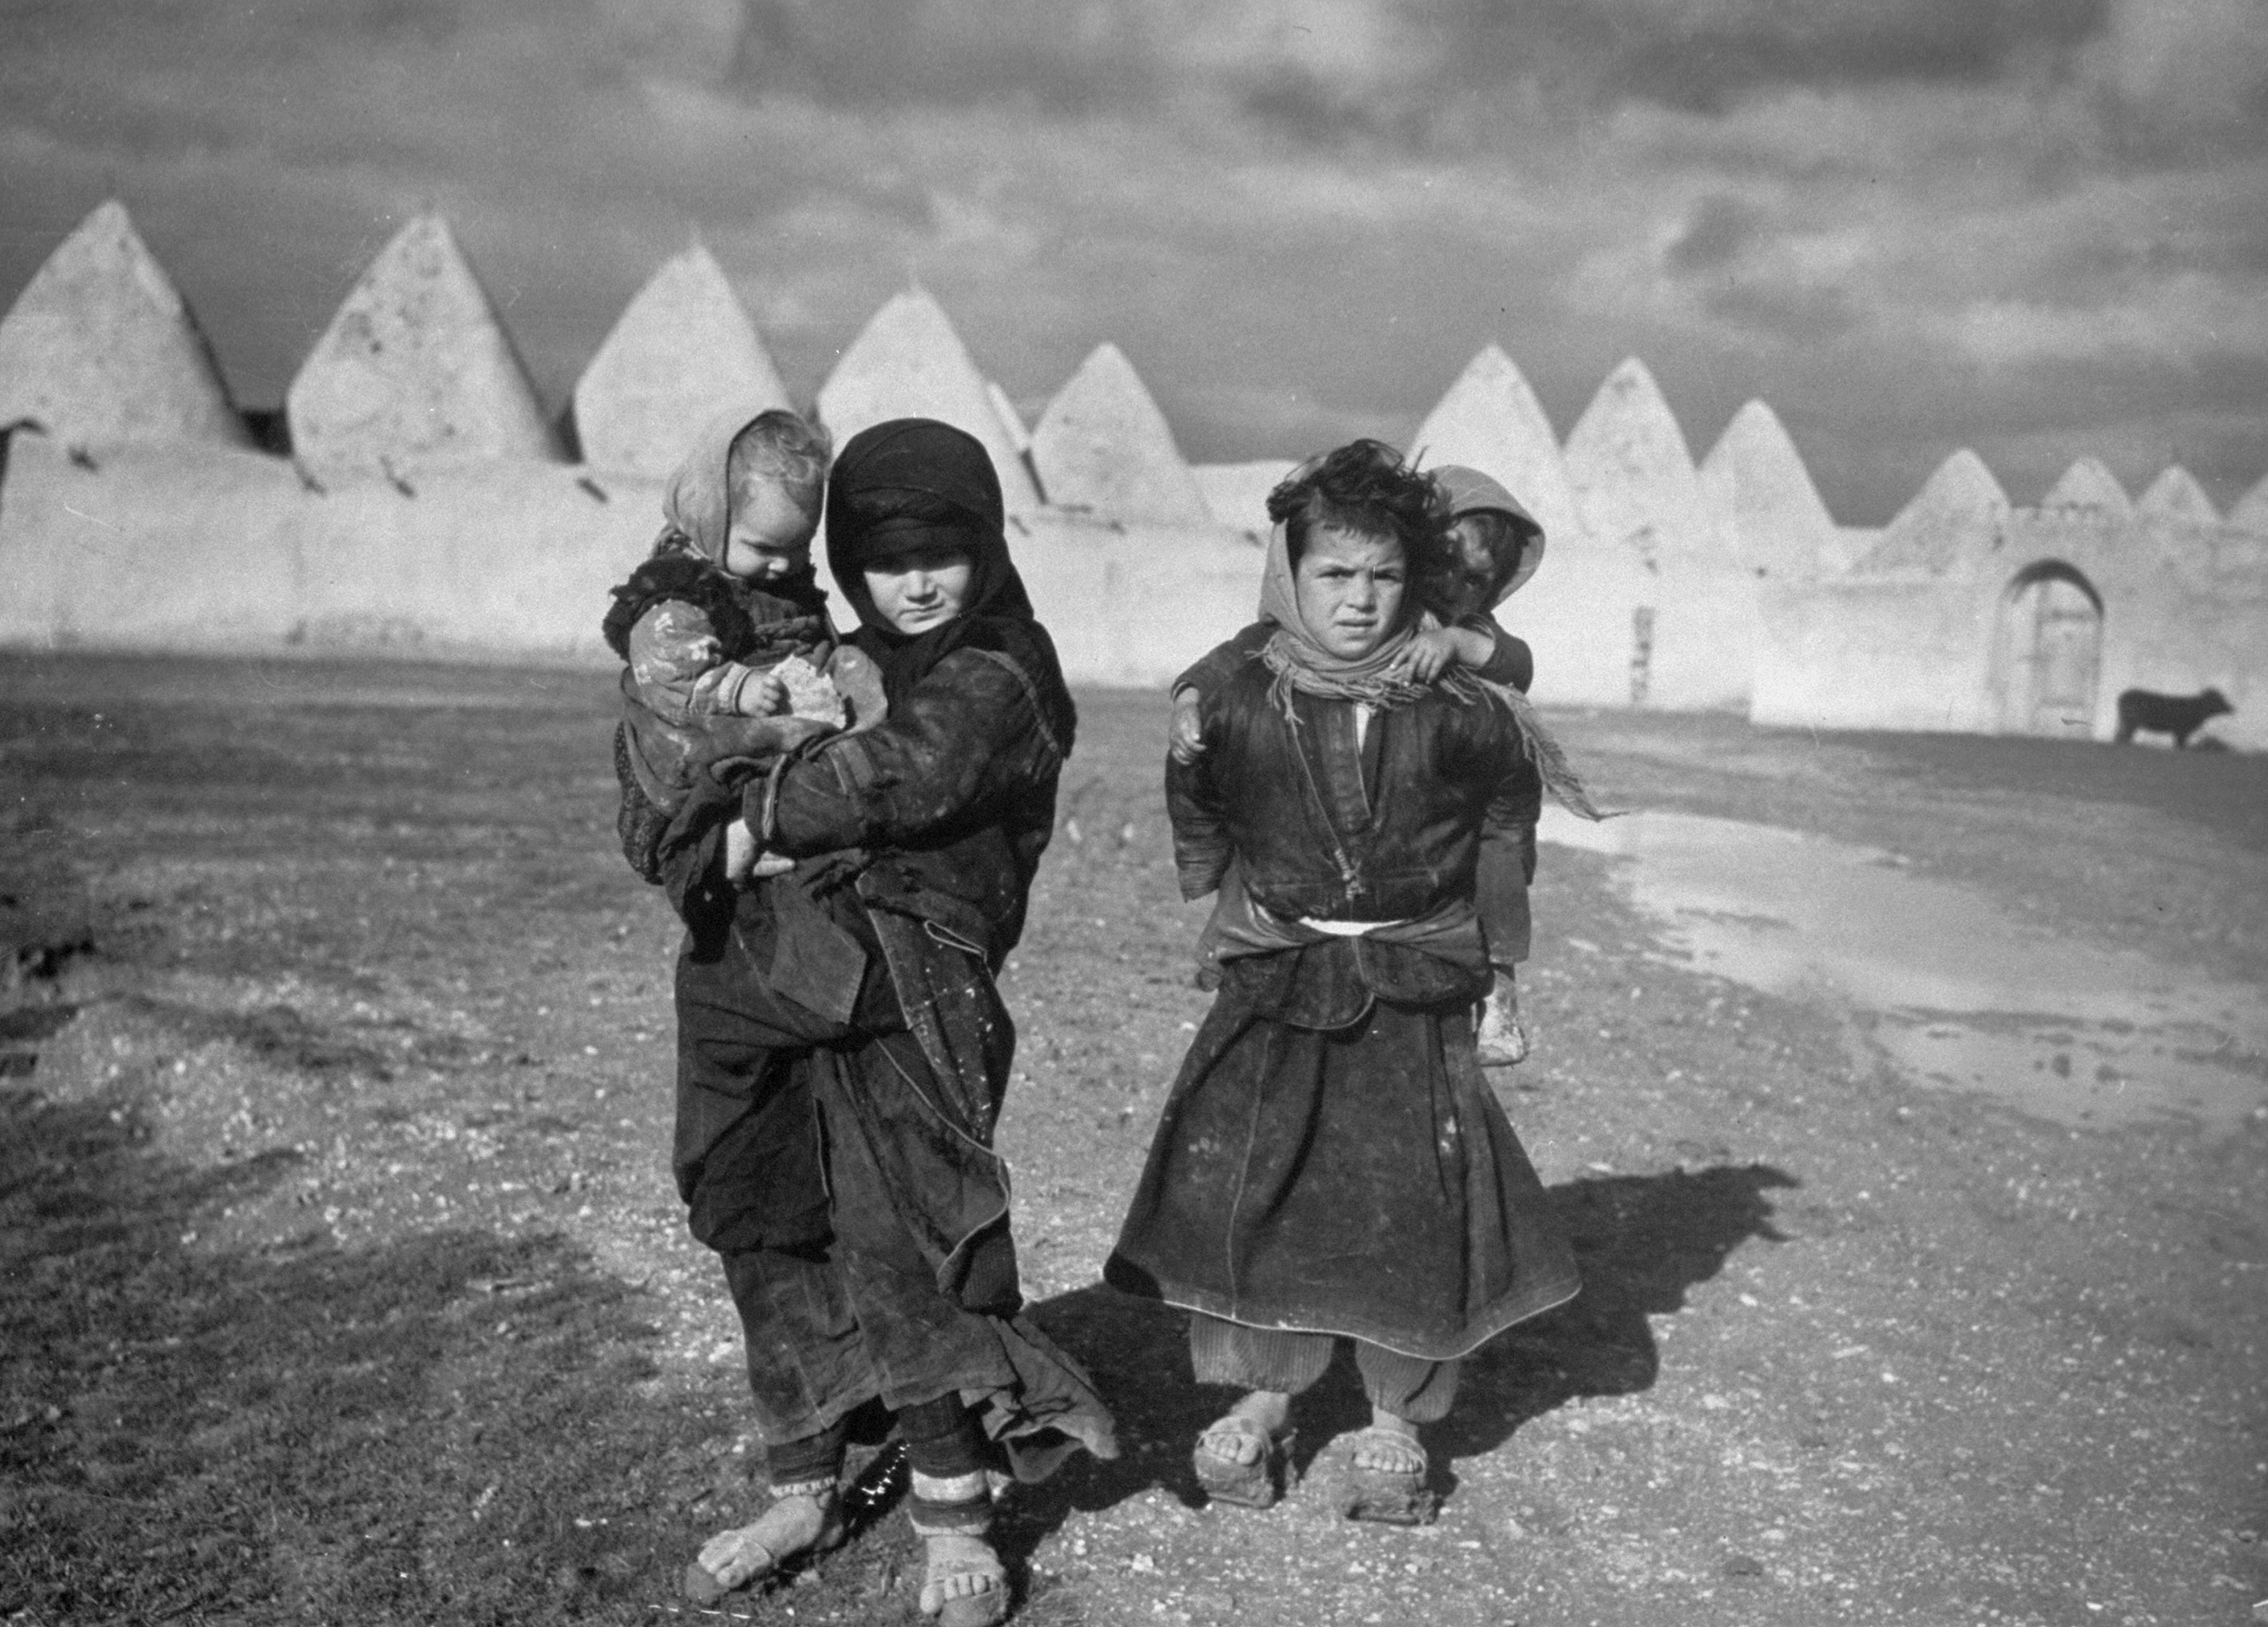 Syrian children outside the walled town of Tell Bisse, Syria, 1940.